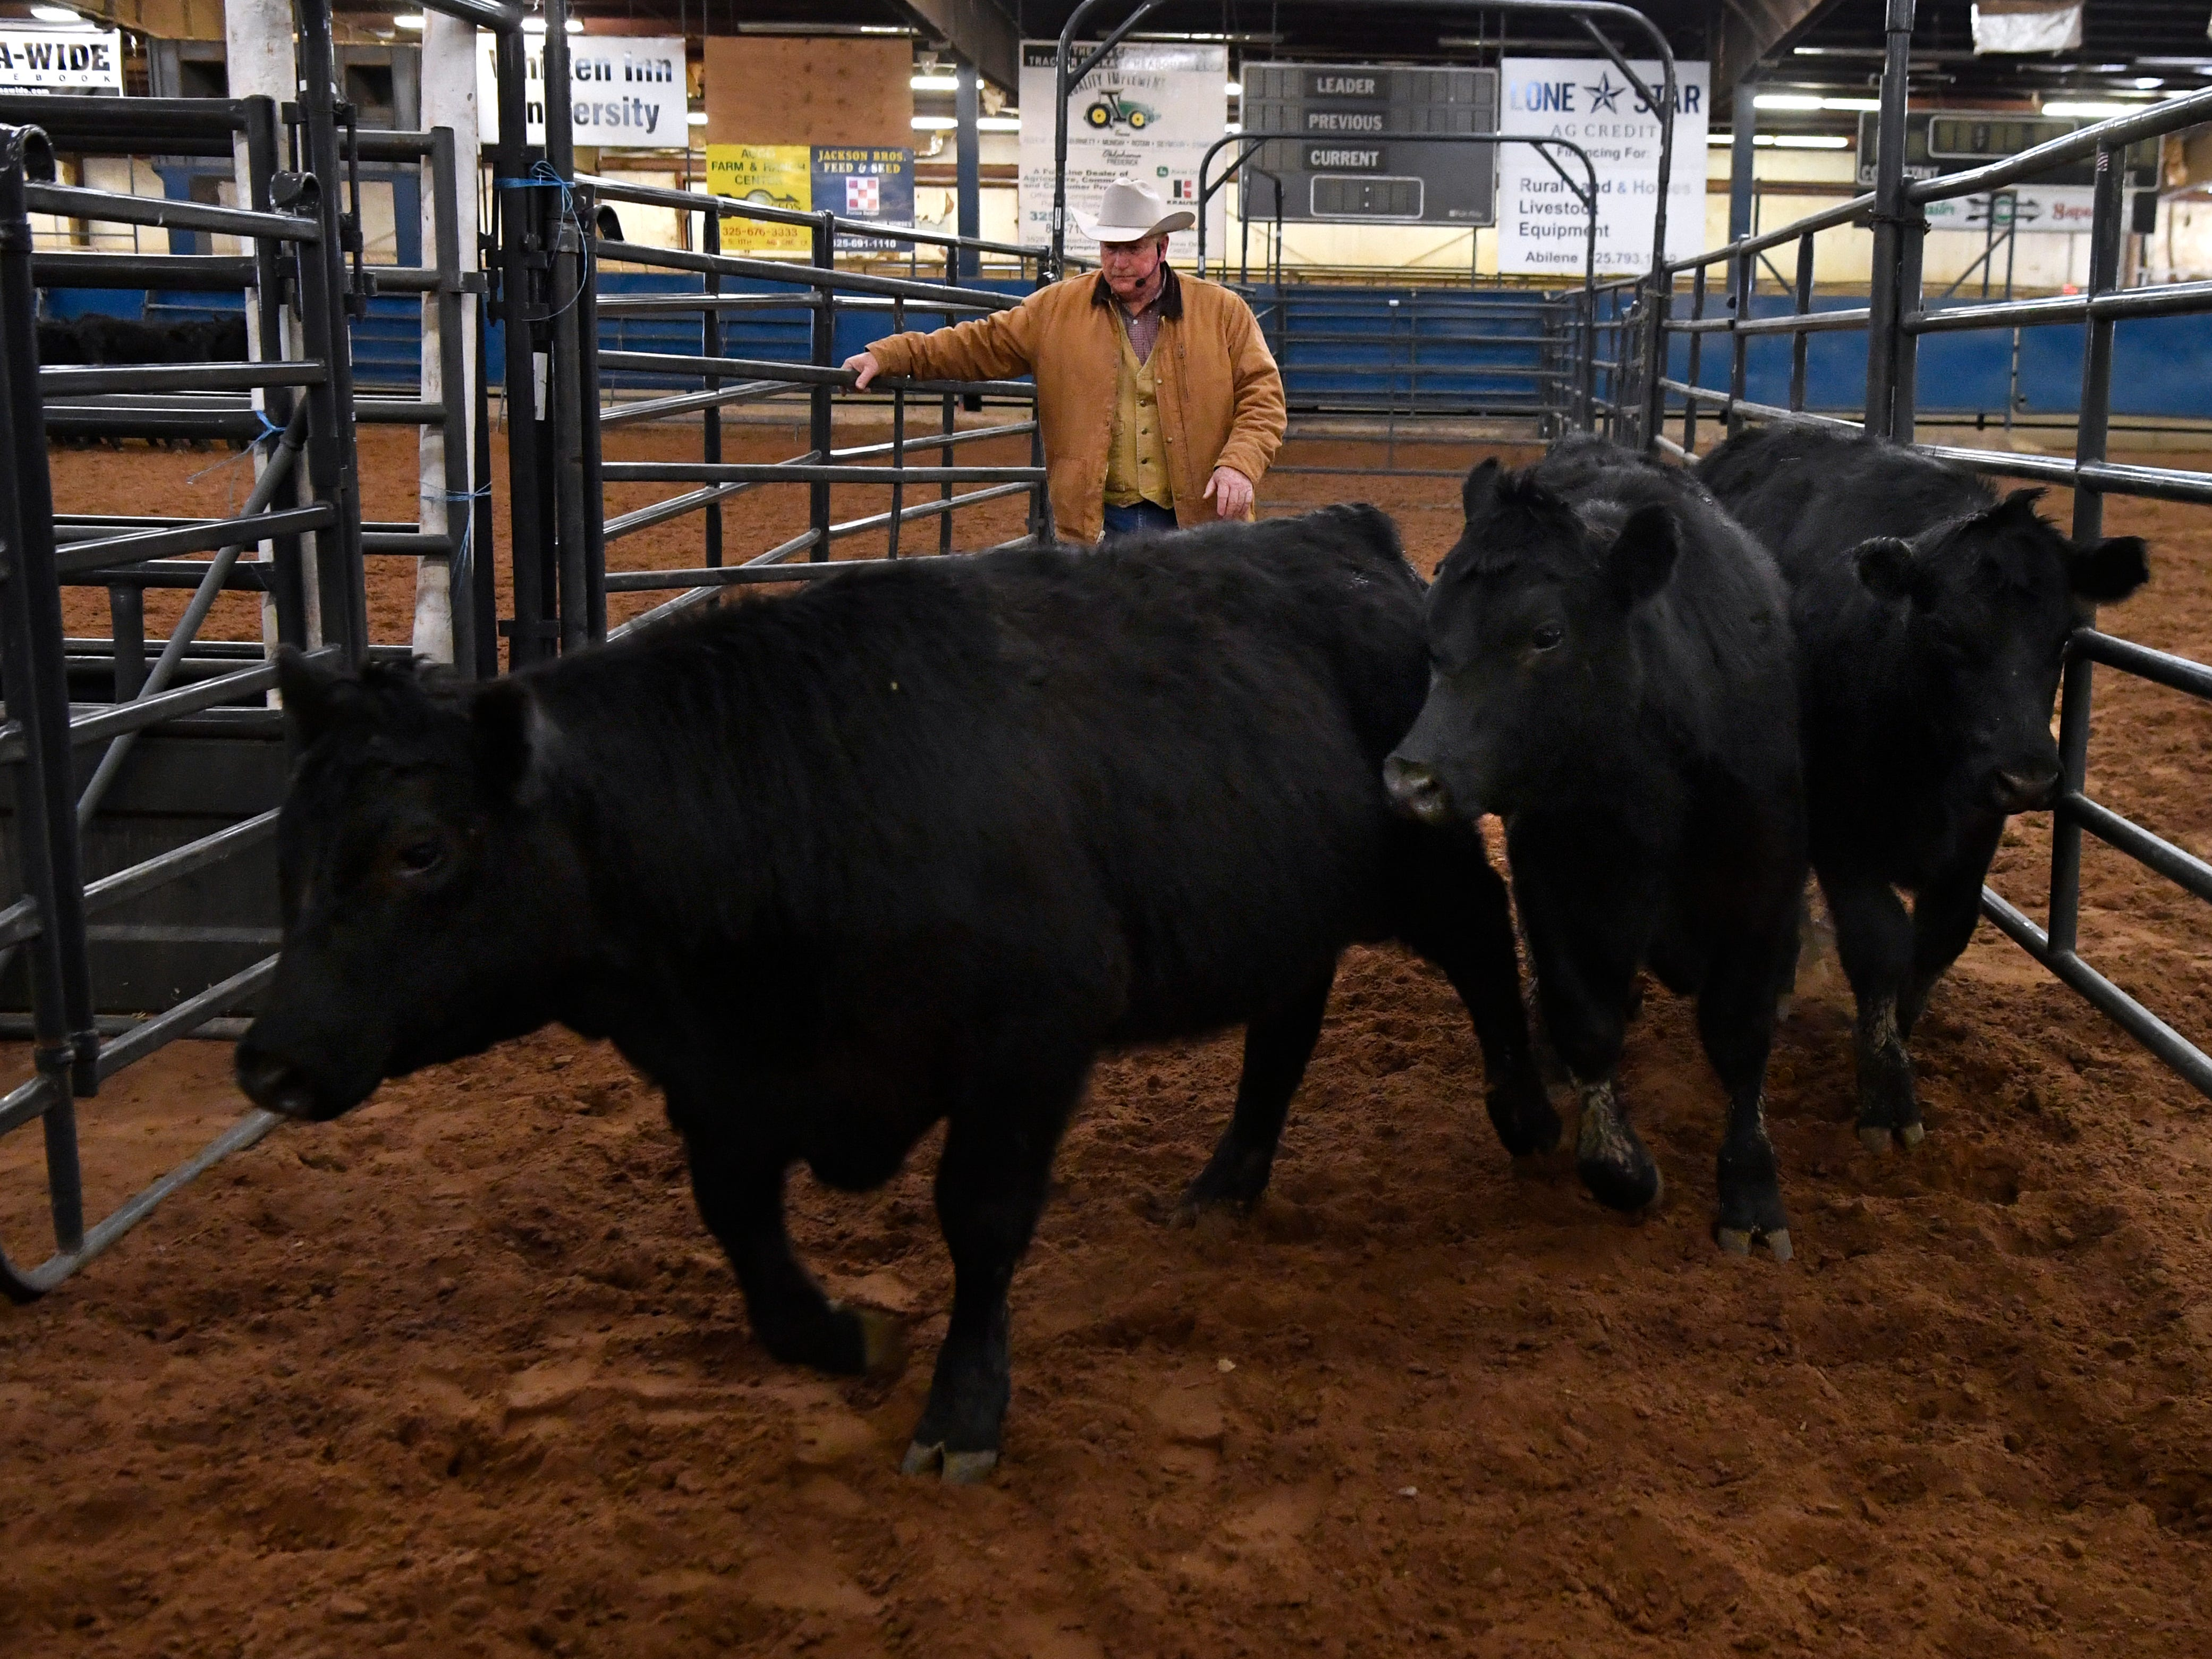 Ron Gill, the associate department head and program leader for Animal Science in the Texas A&M AgriLife Extension Service, leads a clinic on cattle stockmanship and stewardship Tuesday Feb. 19, 2019. The demonstration was held in the Horse Barn at the Taylor County Expo Center, part of the 2019 Farm, Ranch & Wildlife Expo.